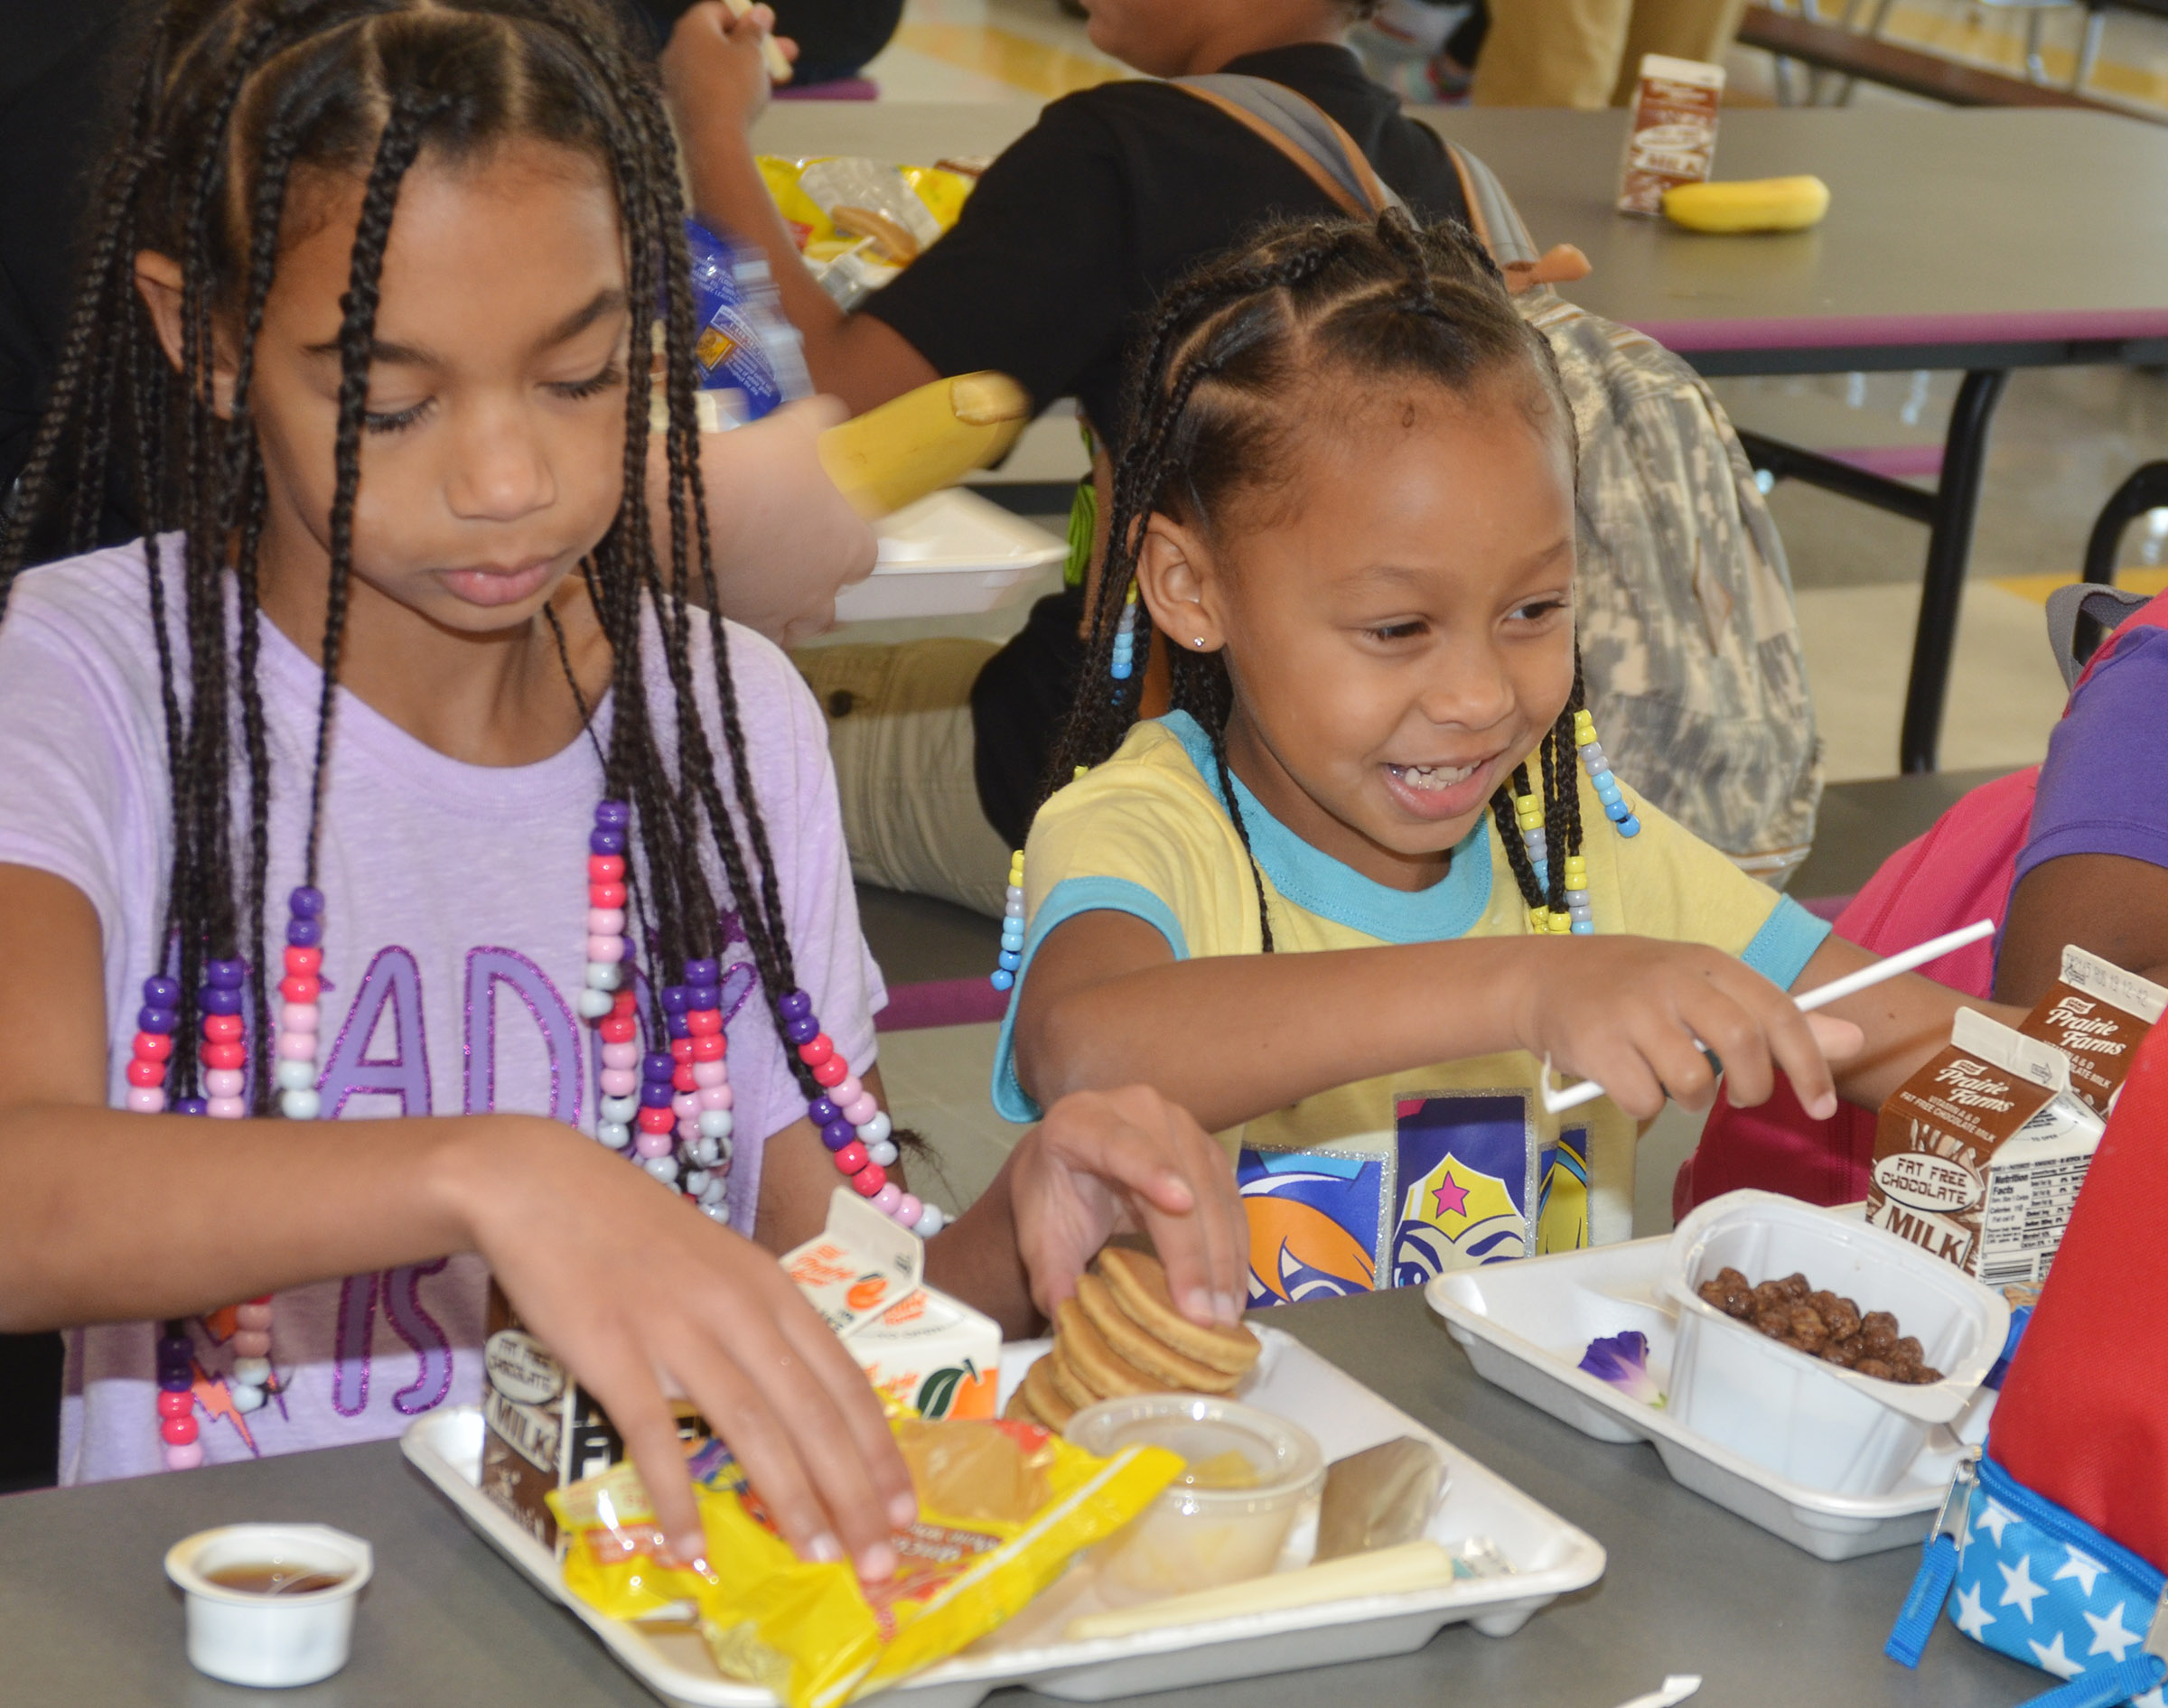 CES fourth-grader De'Asia Fisher, at left, and her sister, Elyzabeth, a first-grader, eat breakfast.